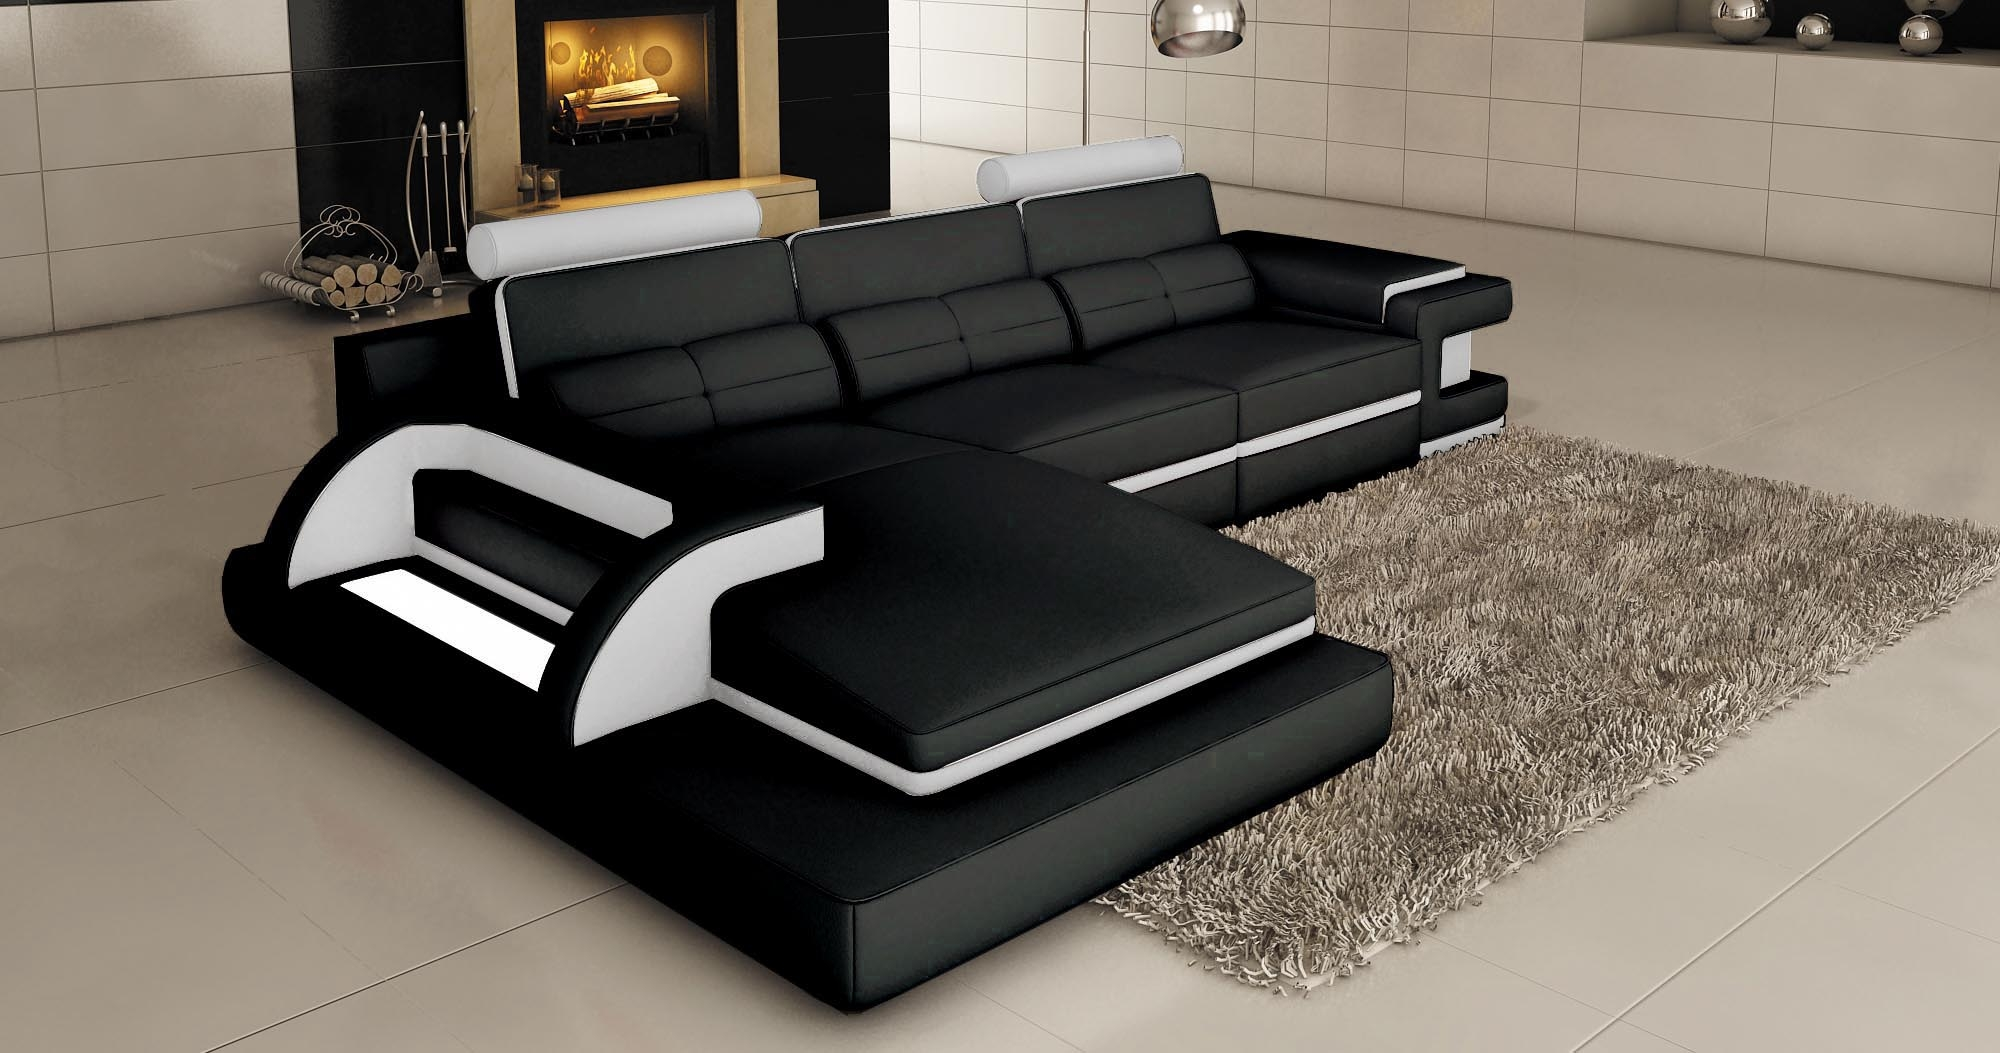 Canap d 39 angle archives page 4 sur 15 royal sofa for Salon avec canape d angle